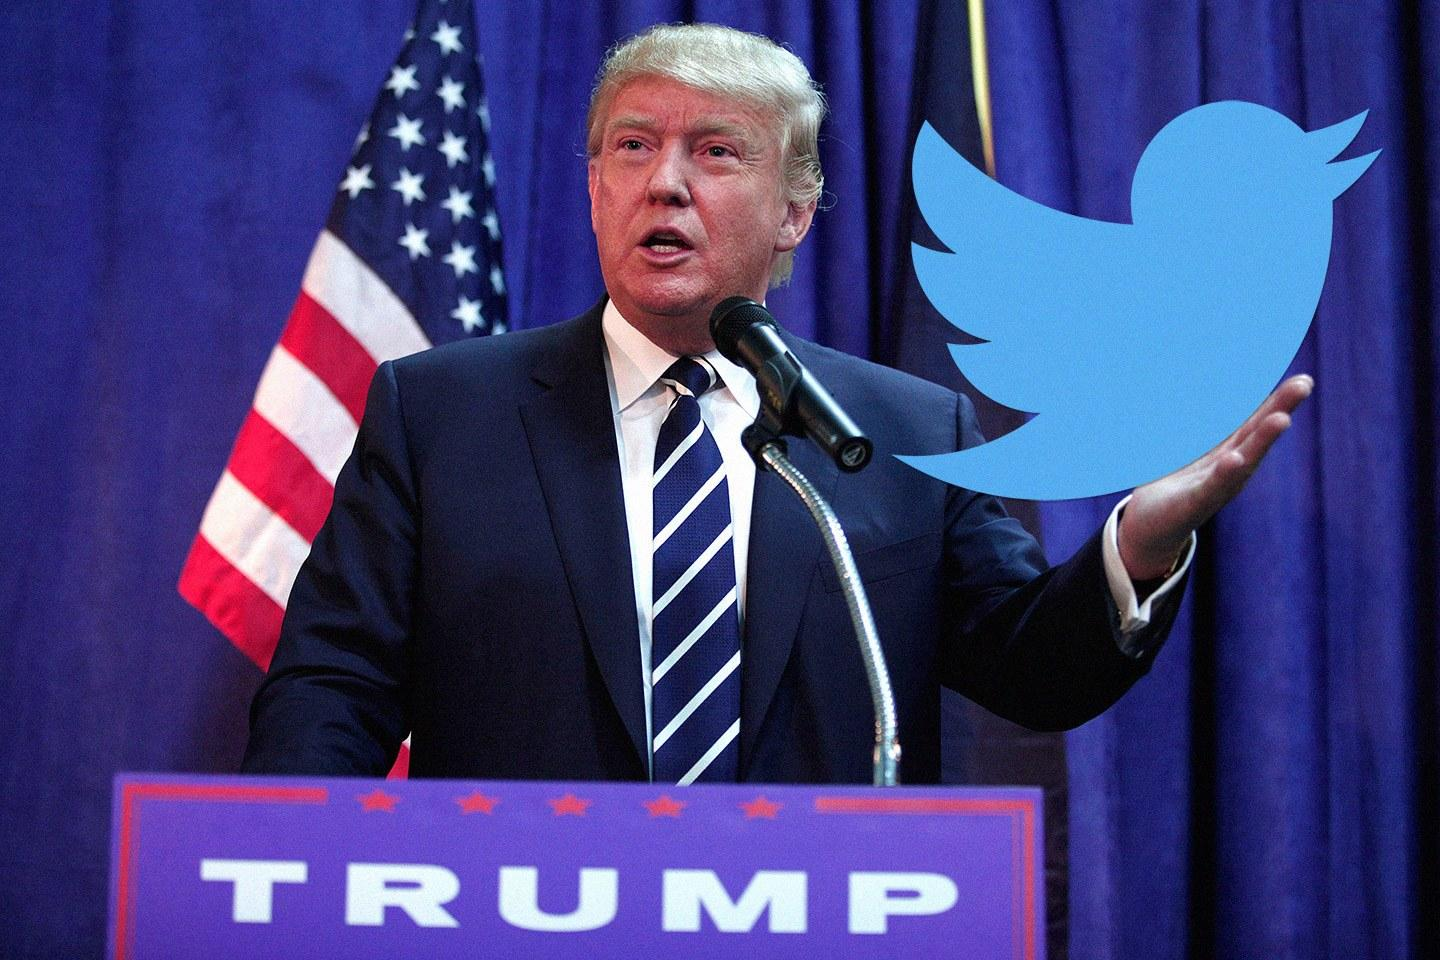 The President uses Twitter to directly talk to the American people. Many of his tweets have been heavily criticized.